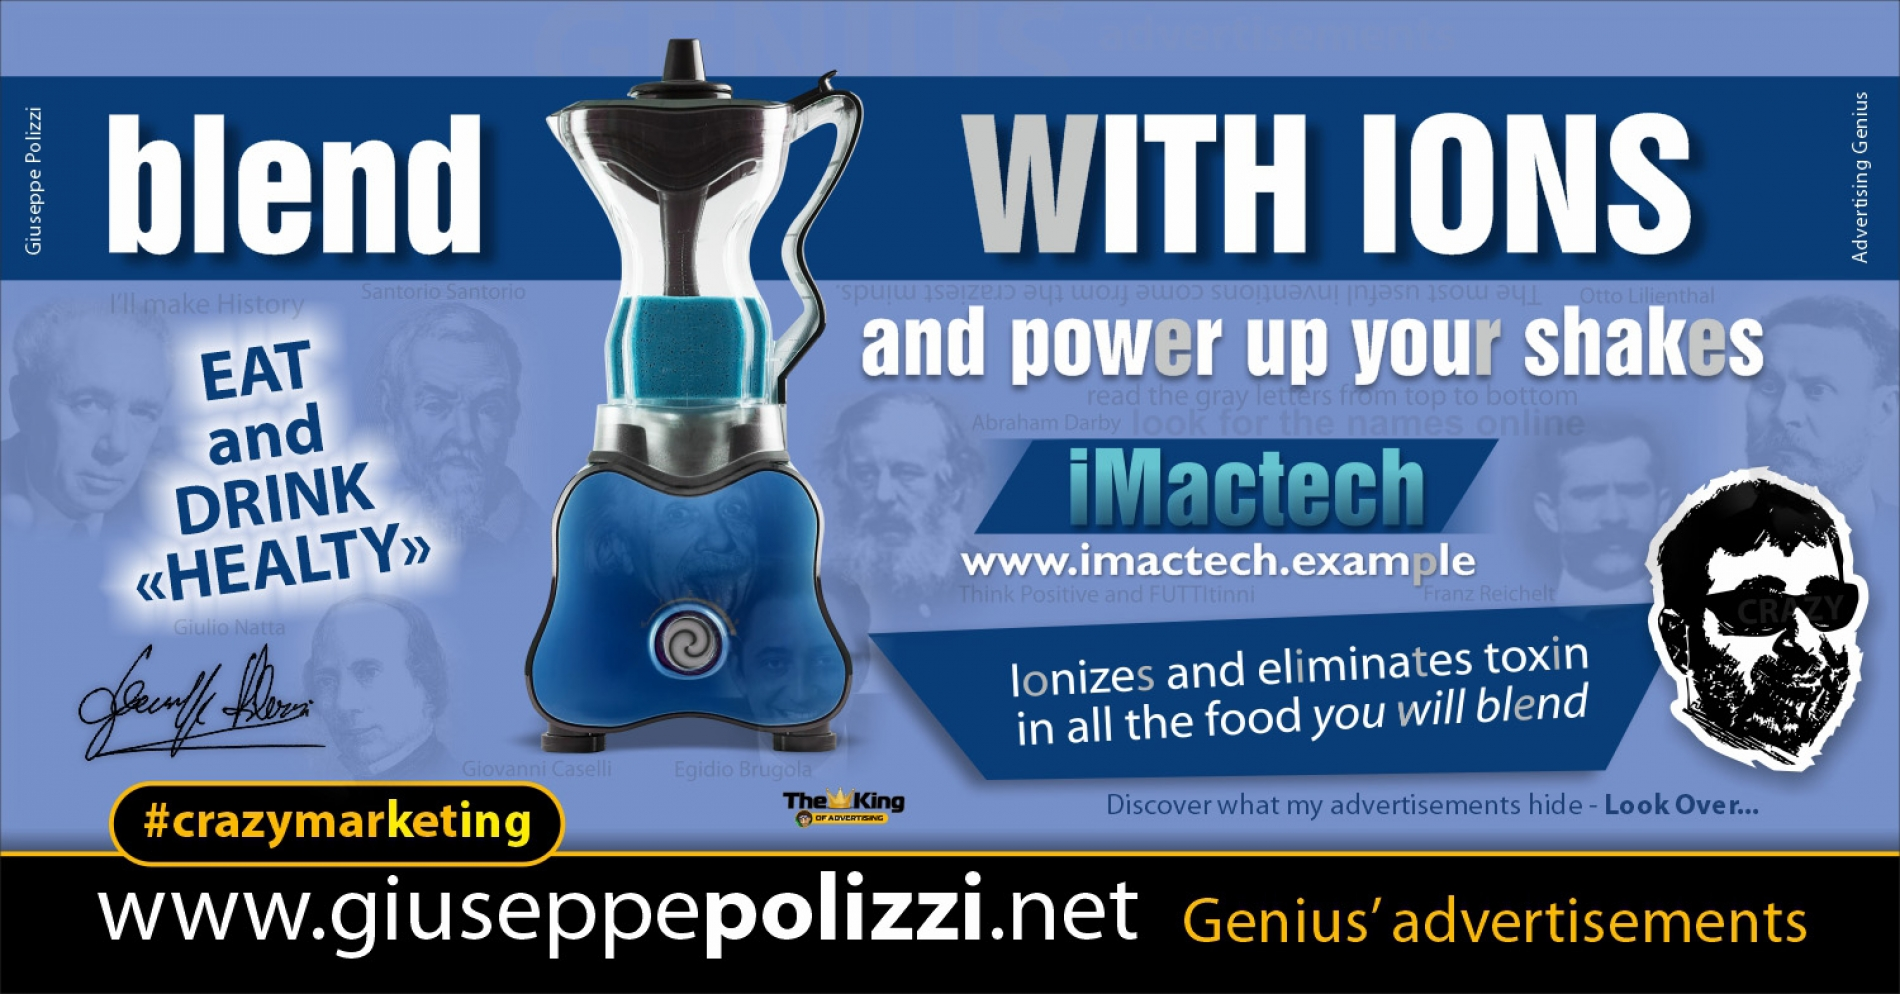 Giuseppe Polizzi Crazymarketing Blend with Ions advertisements